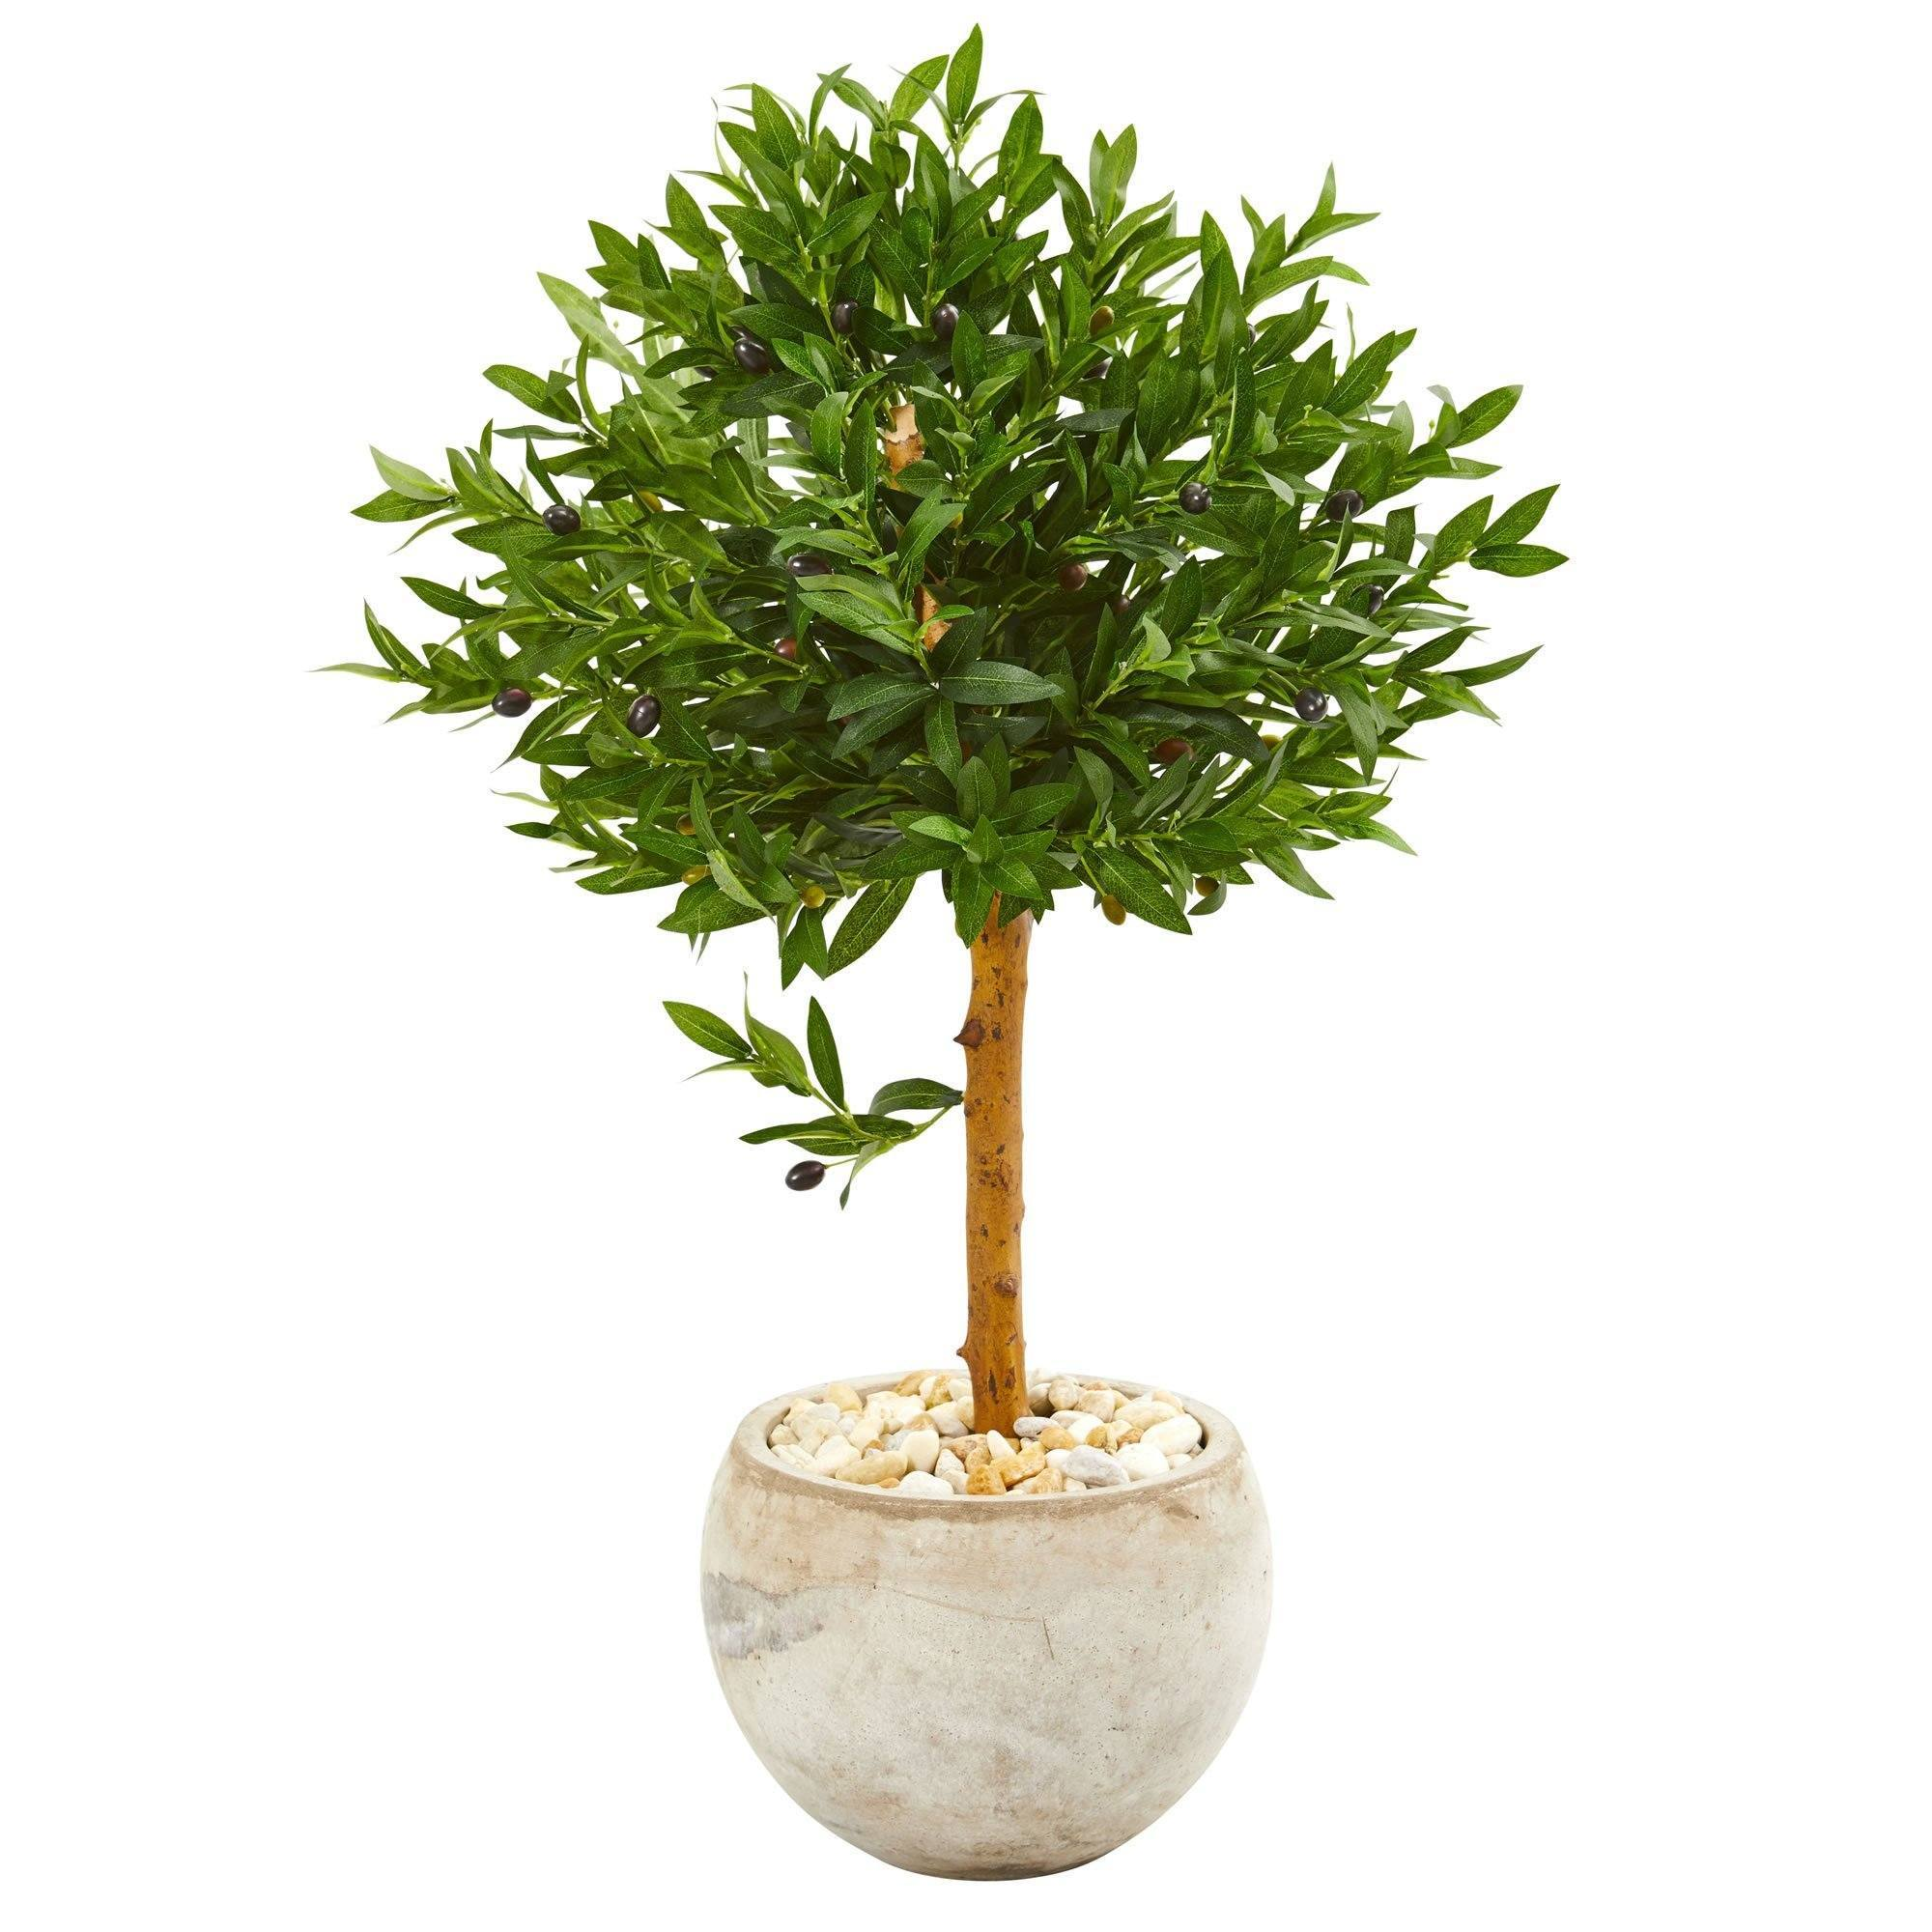 38 Olive Topiary Artificial Tree In Bowl Planter Uv Resistant Indoor Outdoor Nearly Natural